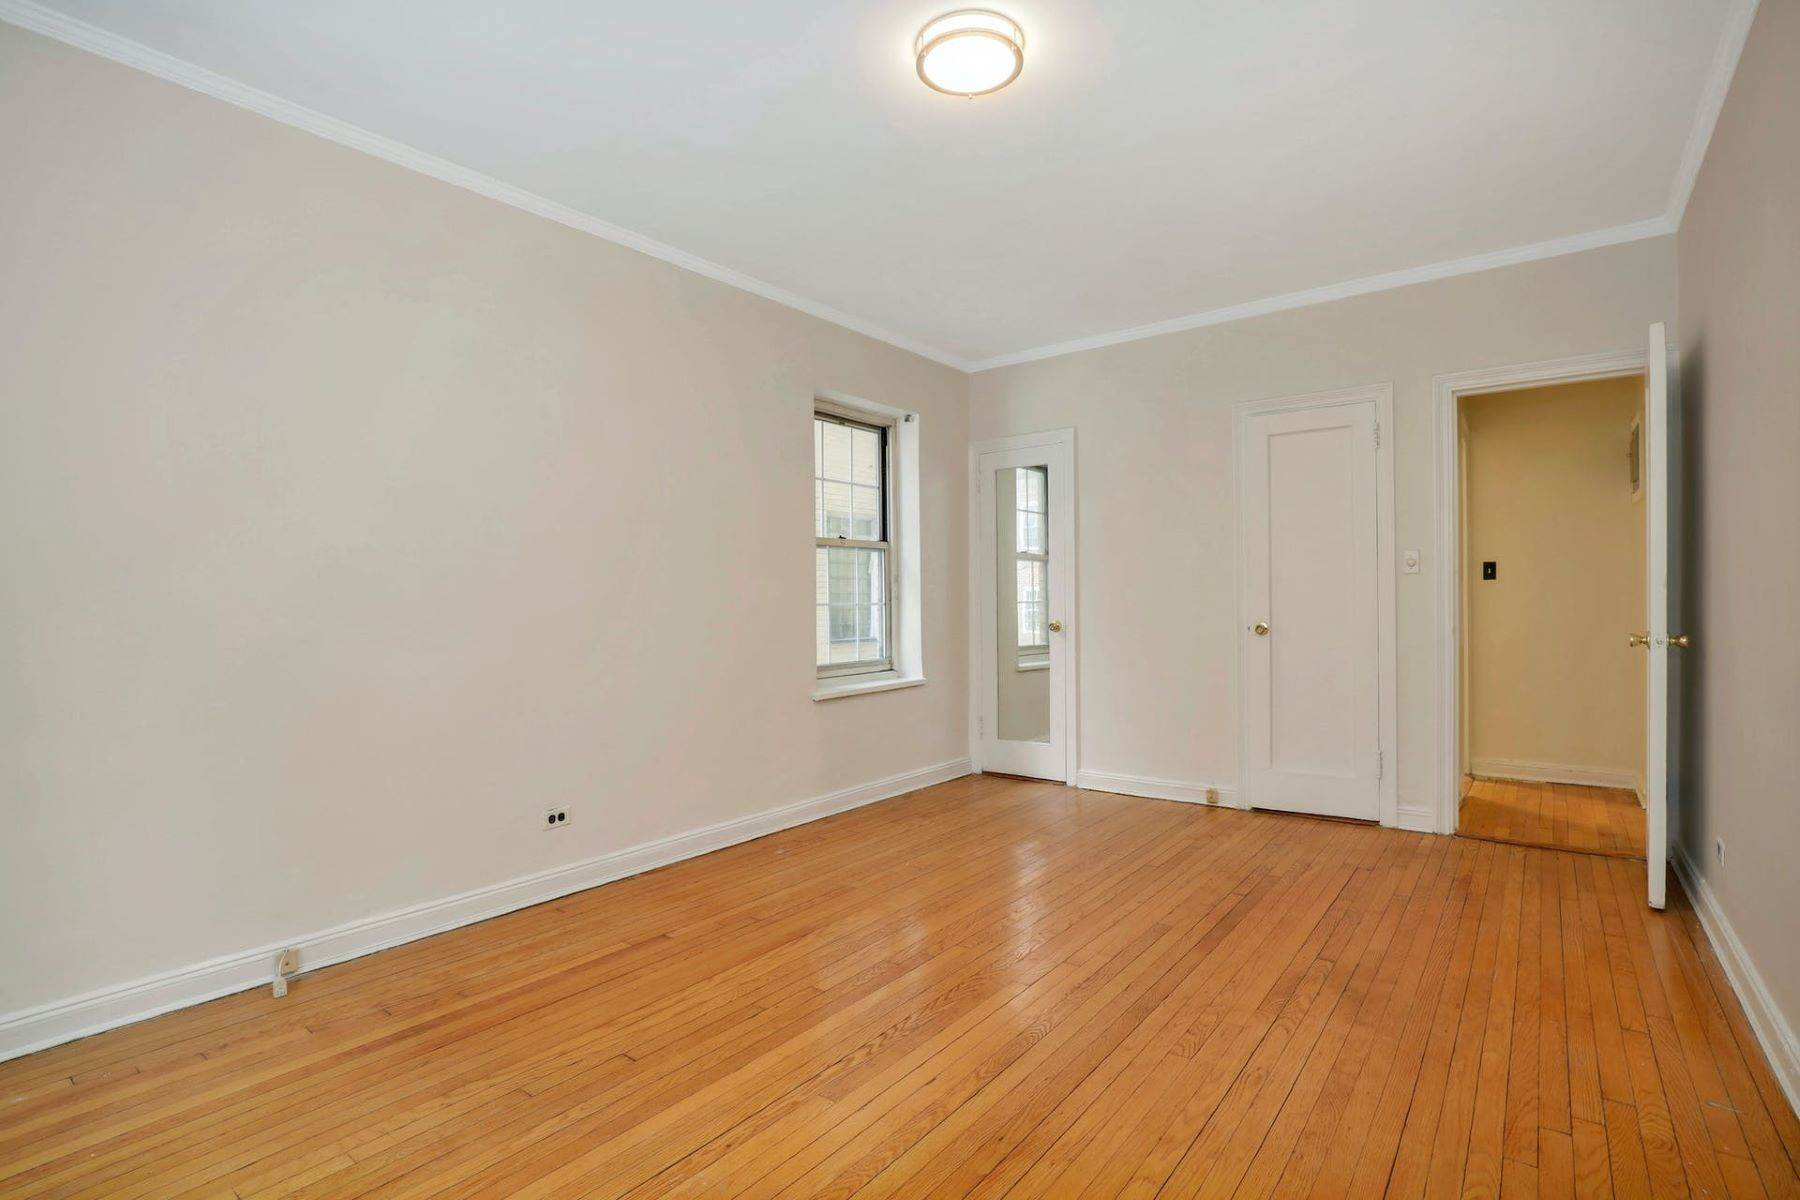 11. Co-op Properties for Sale at 35-24 78th Street, Jackson Heights, Ny, 11372 35-24 78th Street, Unit# A11 Jackson Heights, New York 11372 United States